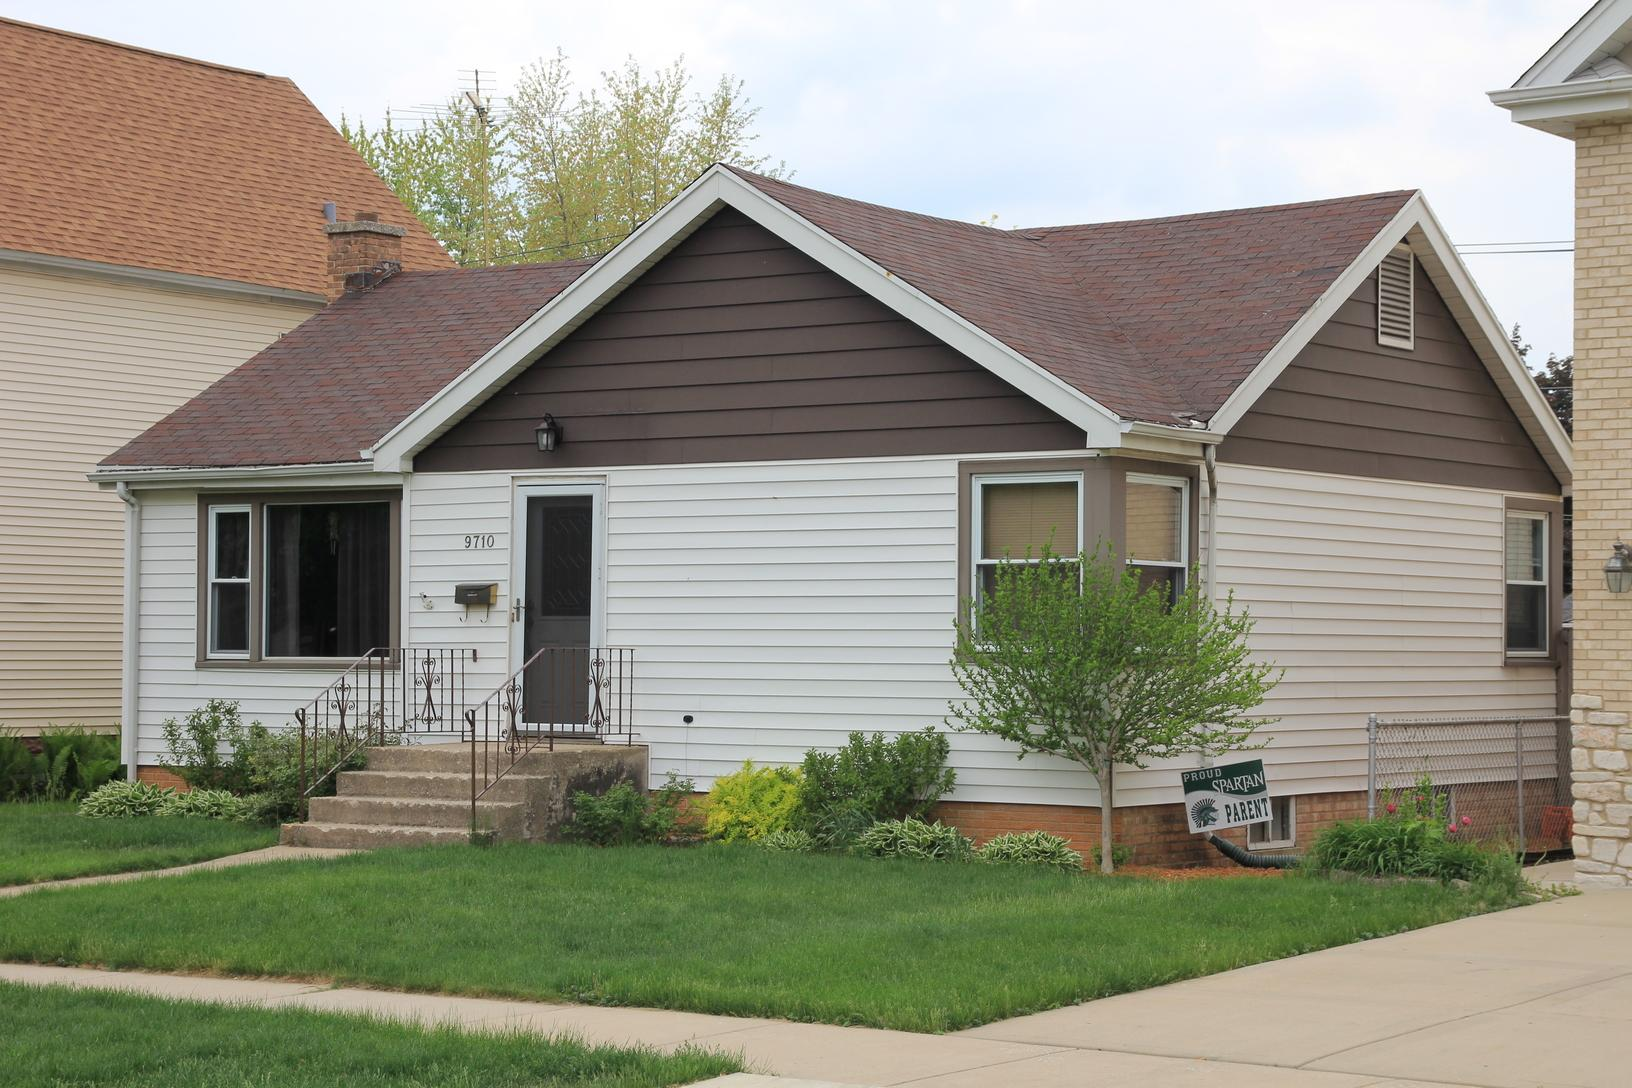 Roofing, Siding, Soffit, Fascia and Gutter replacement project in Oak Lawn, IL - Before Photo